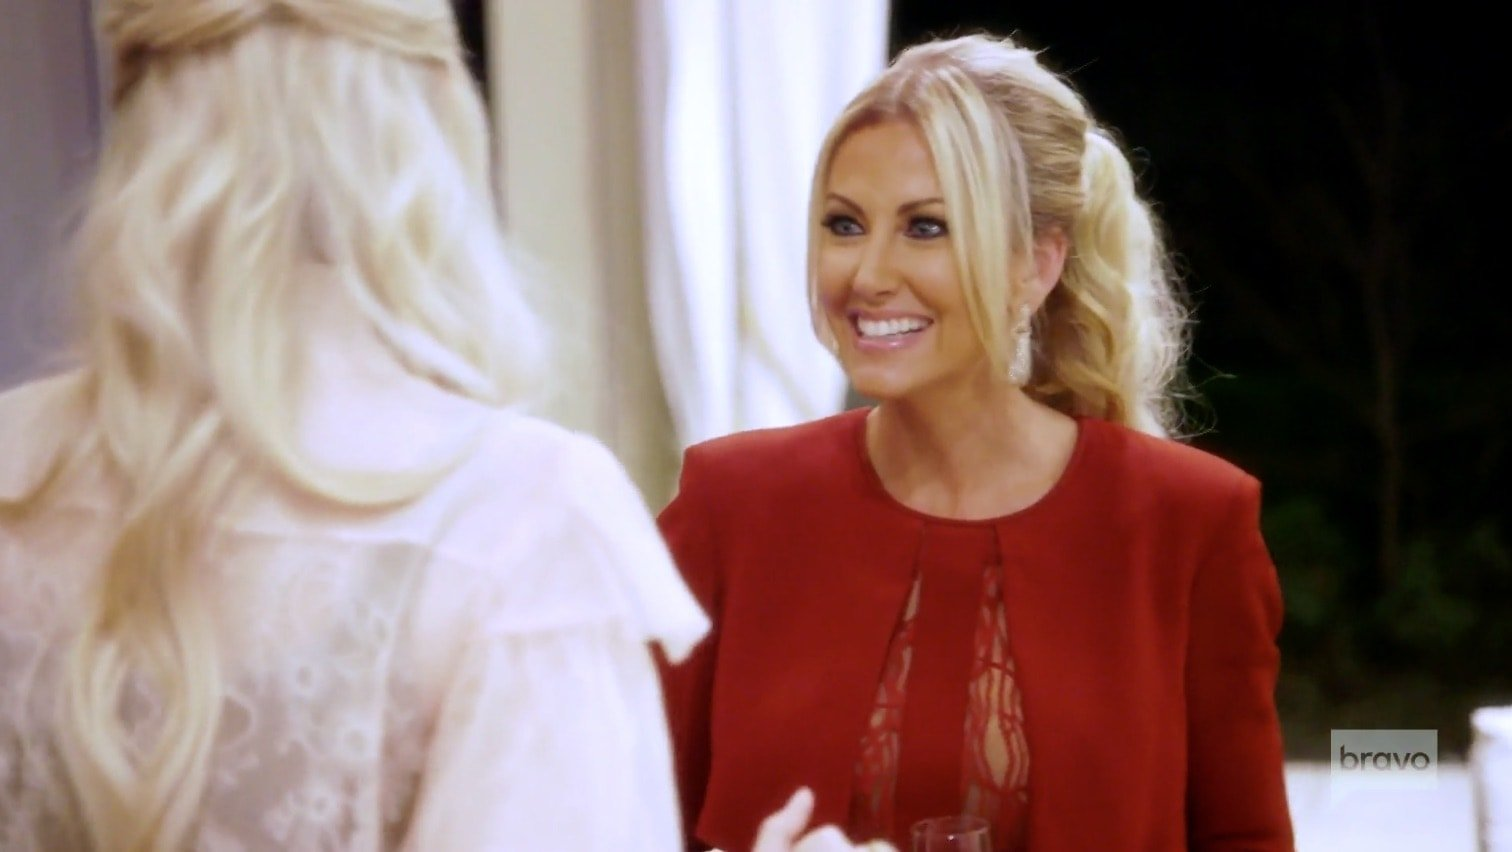 Stephanie Hollman tells Kameron a lie